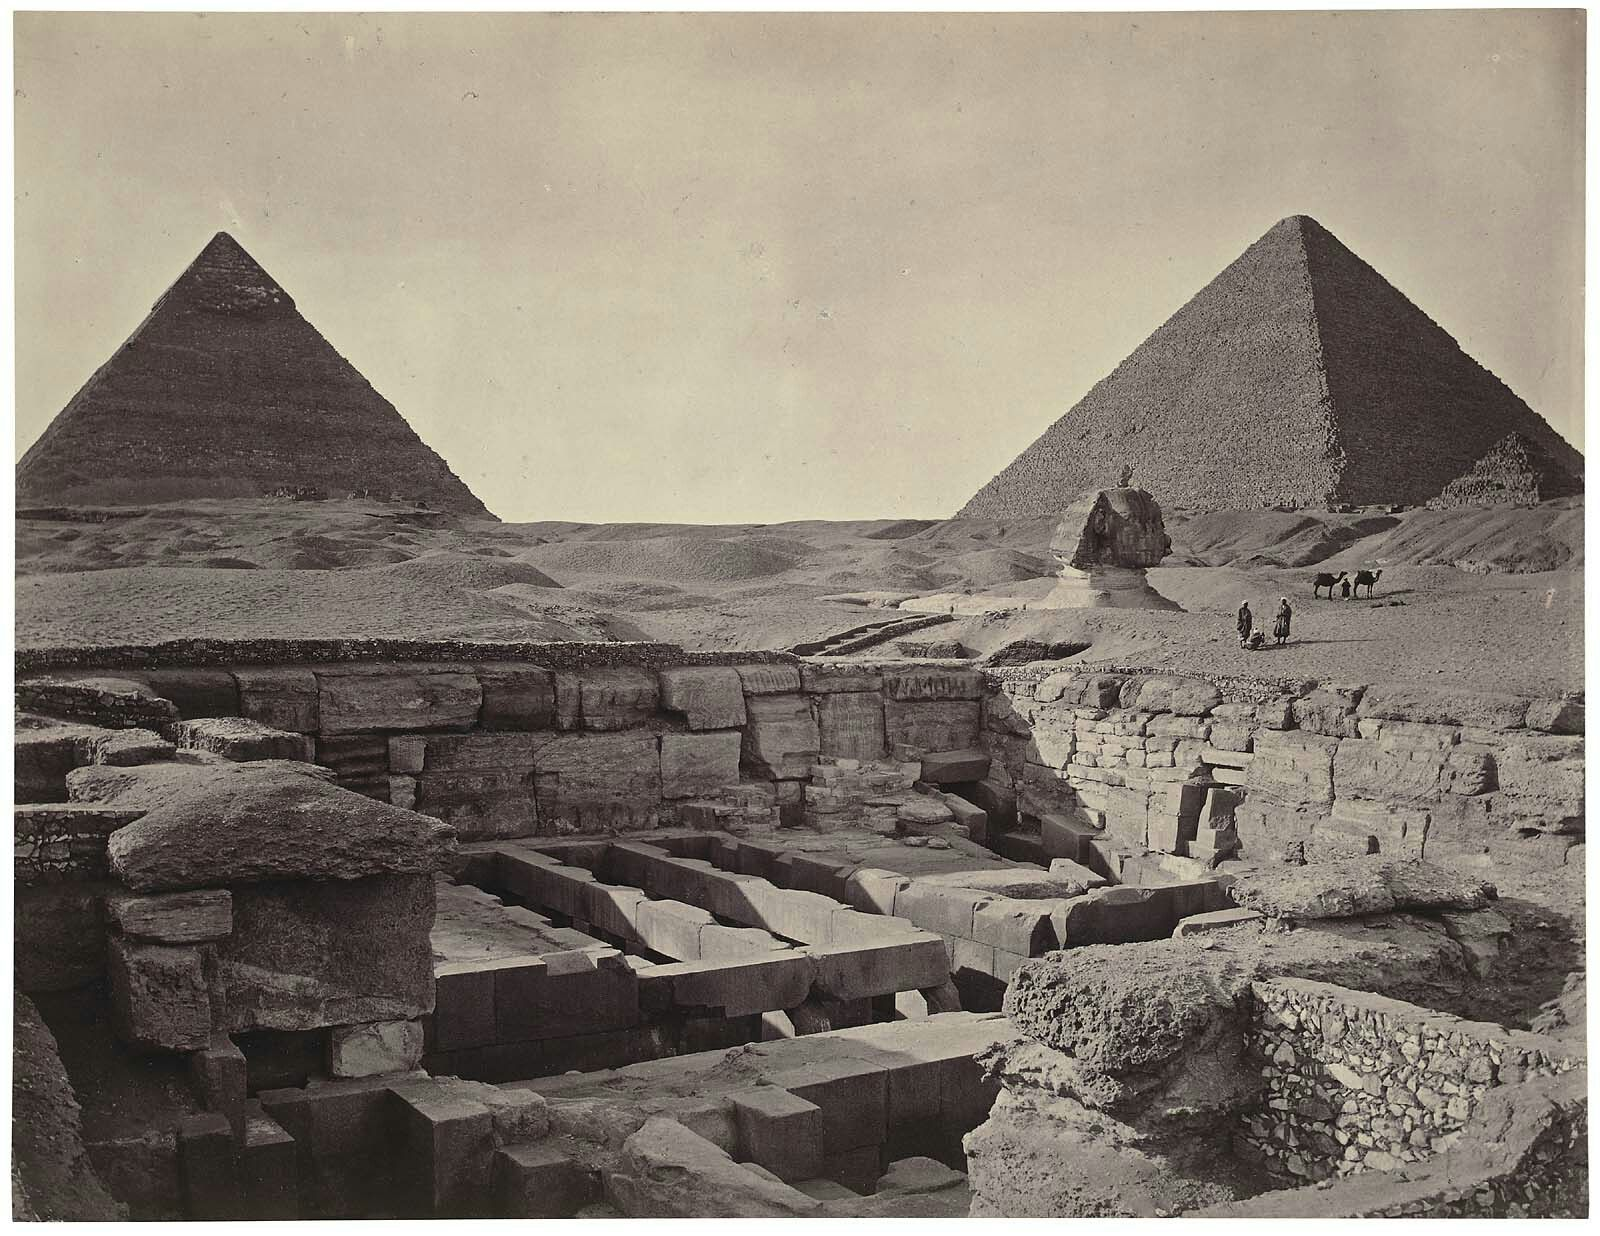 The Giza pyramids of Khufu and Khafra, the Great Sphinx, and the valley temple of Khafra in the foreground, looking northwest c. 1870. Adolphe Braun (French, 1812–1877)   The Museum of Fine Arts, Boston